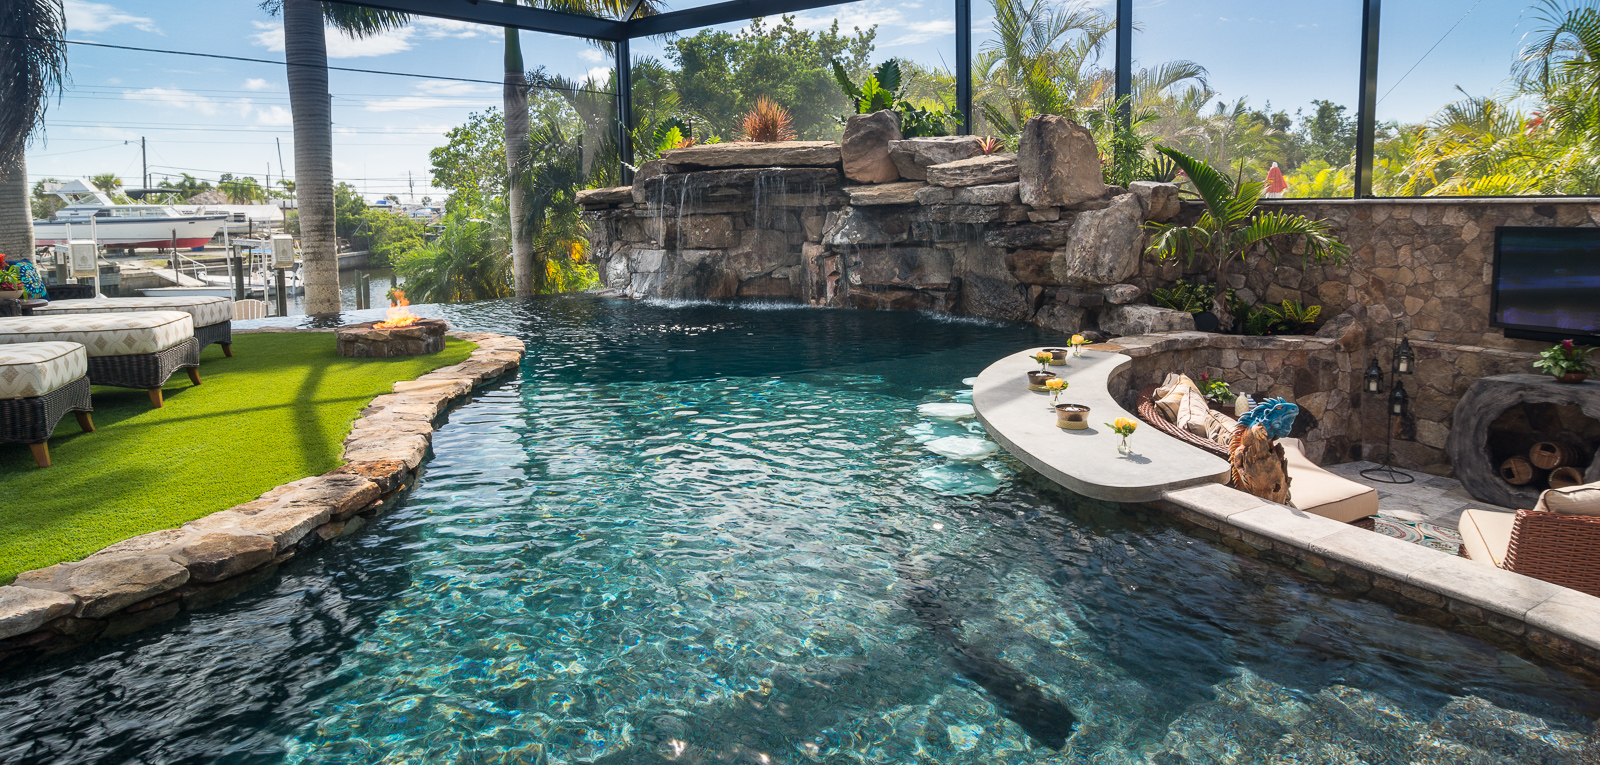 small swimming pool designs for yard with Lazy River Runs on Pond Building Residential Pond Construction Koi Ponds in addition Modern Home Designs moreover Small Inground Pool additionally Rules additionally Plunge Pool.